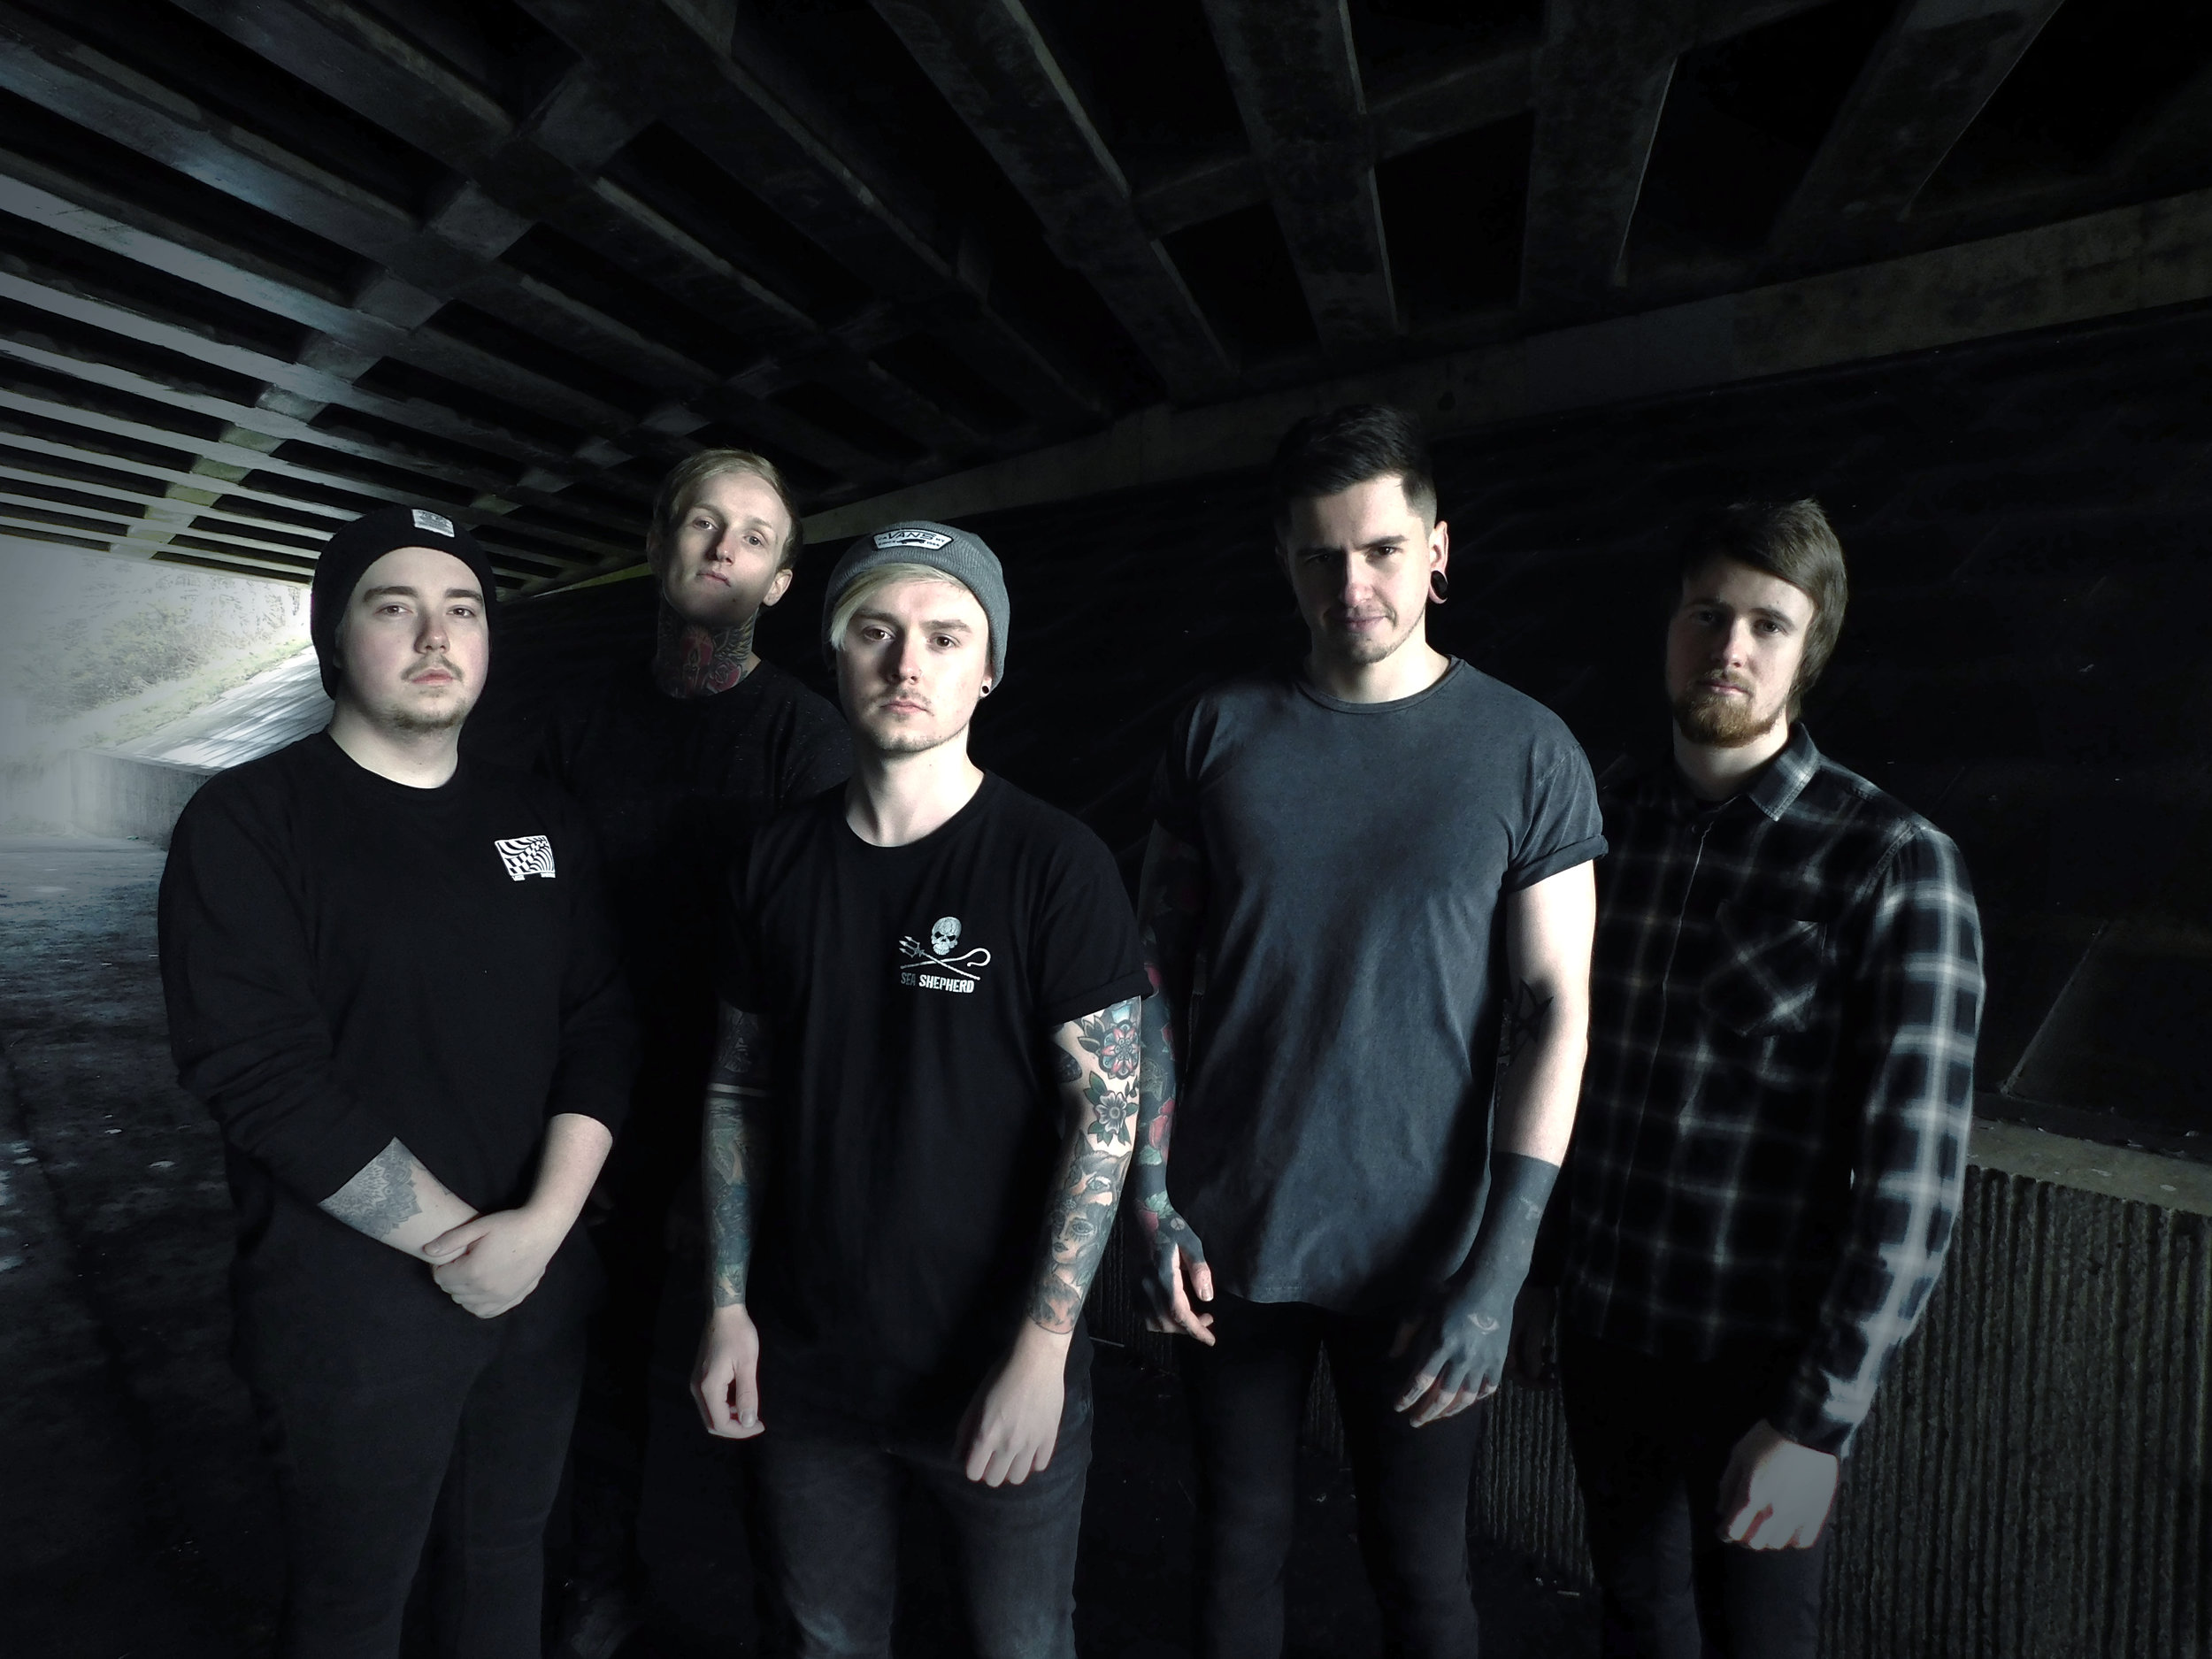 Northern Irish metalcore troupe DREAM AWAKE  are proud to present their new single/video, 'Dispersion'.  First premiered on  Impericon , you can watch 'Dispersion' here: https://www.youtube.com/watch?v=Y--xWf3ZW0k   The video comes ahead of the band's support of  Northlane in Northern Ireland and Eire. Dates:  22 – DUBLIN,Voodoo Lounge 23 – LIMERICK, Dolan's 24 – BELFAST, Limelight  Formed in 2014 and hailing from Belfast, DREAM AWAKE have quickly made a name for themselves in the UK metalcore scene. Dropping their debut single, 'Burdens', at the end of 2014, the band soon released their first EP, Pathfinder ,which propelled  DREAM AWAKE to festival appearances at Download and Sunflowerfest, as well as shows with  Napoleon and  Greywind .  Following 2017's EP  Don't Hold Your Breath , DREAM AWAKE have kept up their impressive momentum with two standalone singles, 'Symphony', and now 'Dispersion'.  Full dates:  MAY  w/  Northlane    22 – DUBLIN,Voodoo Lounge 23 – LIMERICK, Dolan's 24 – BELFAST, Limelight  JUNE  w/  Oceans Ate Alaska   24 – SHEFFIELD, The Mulberry